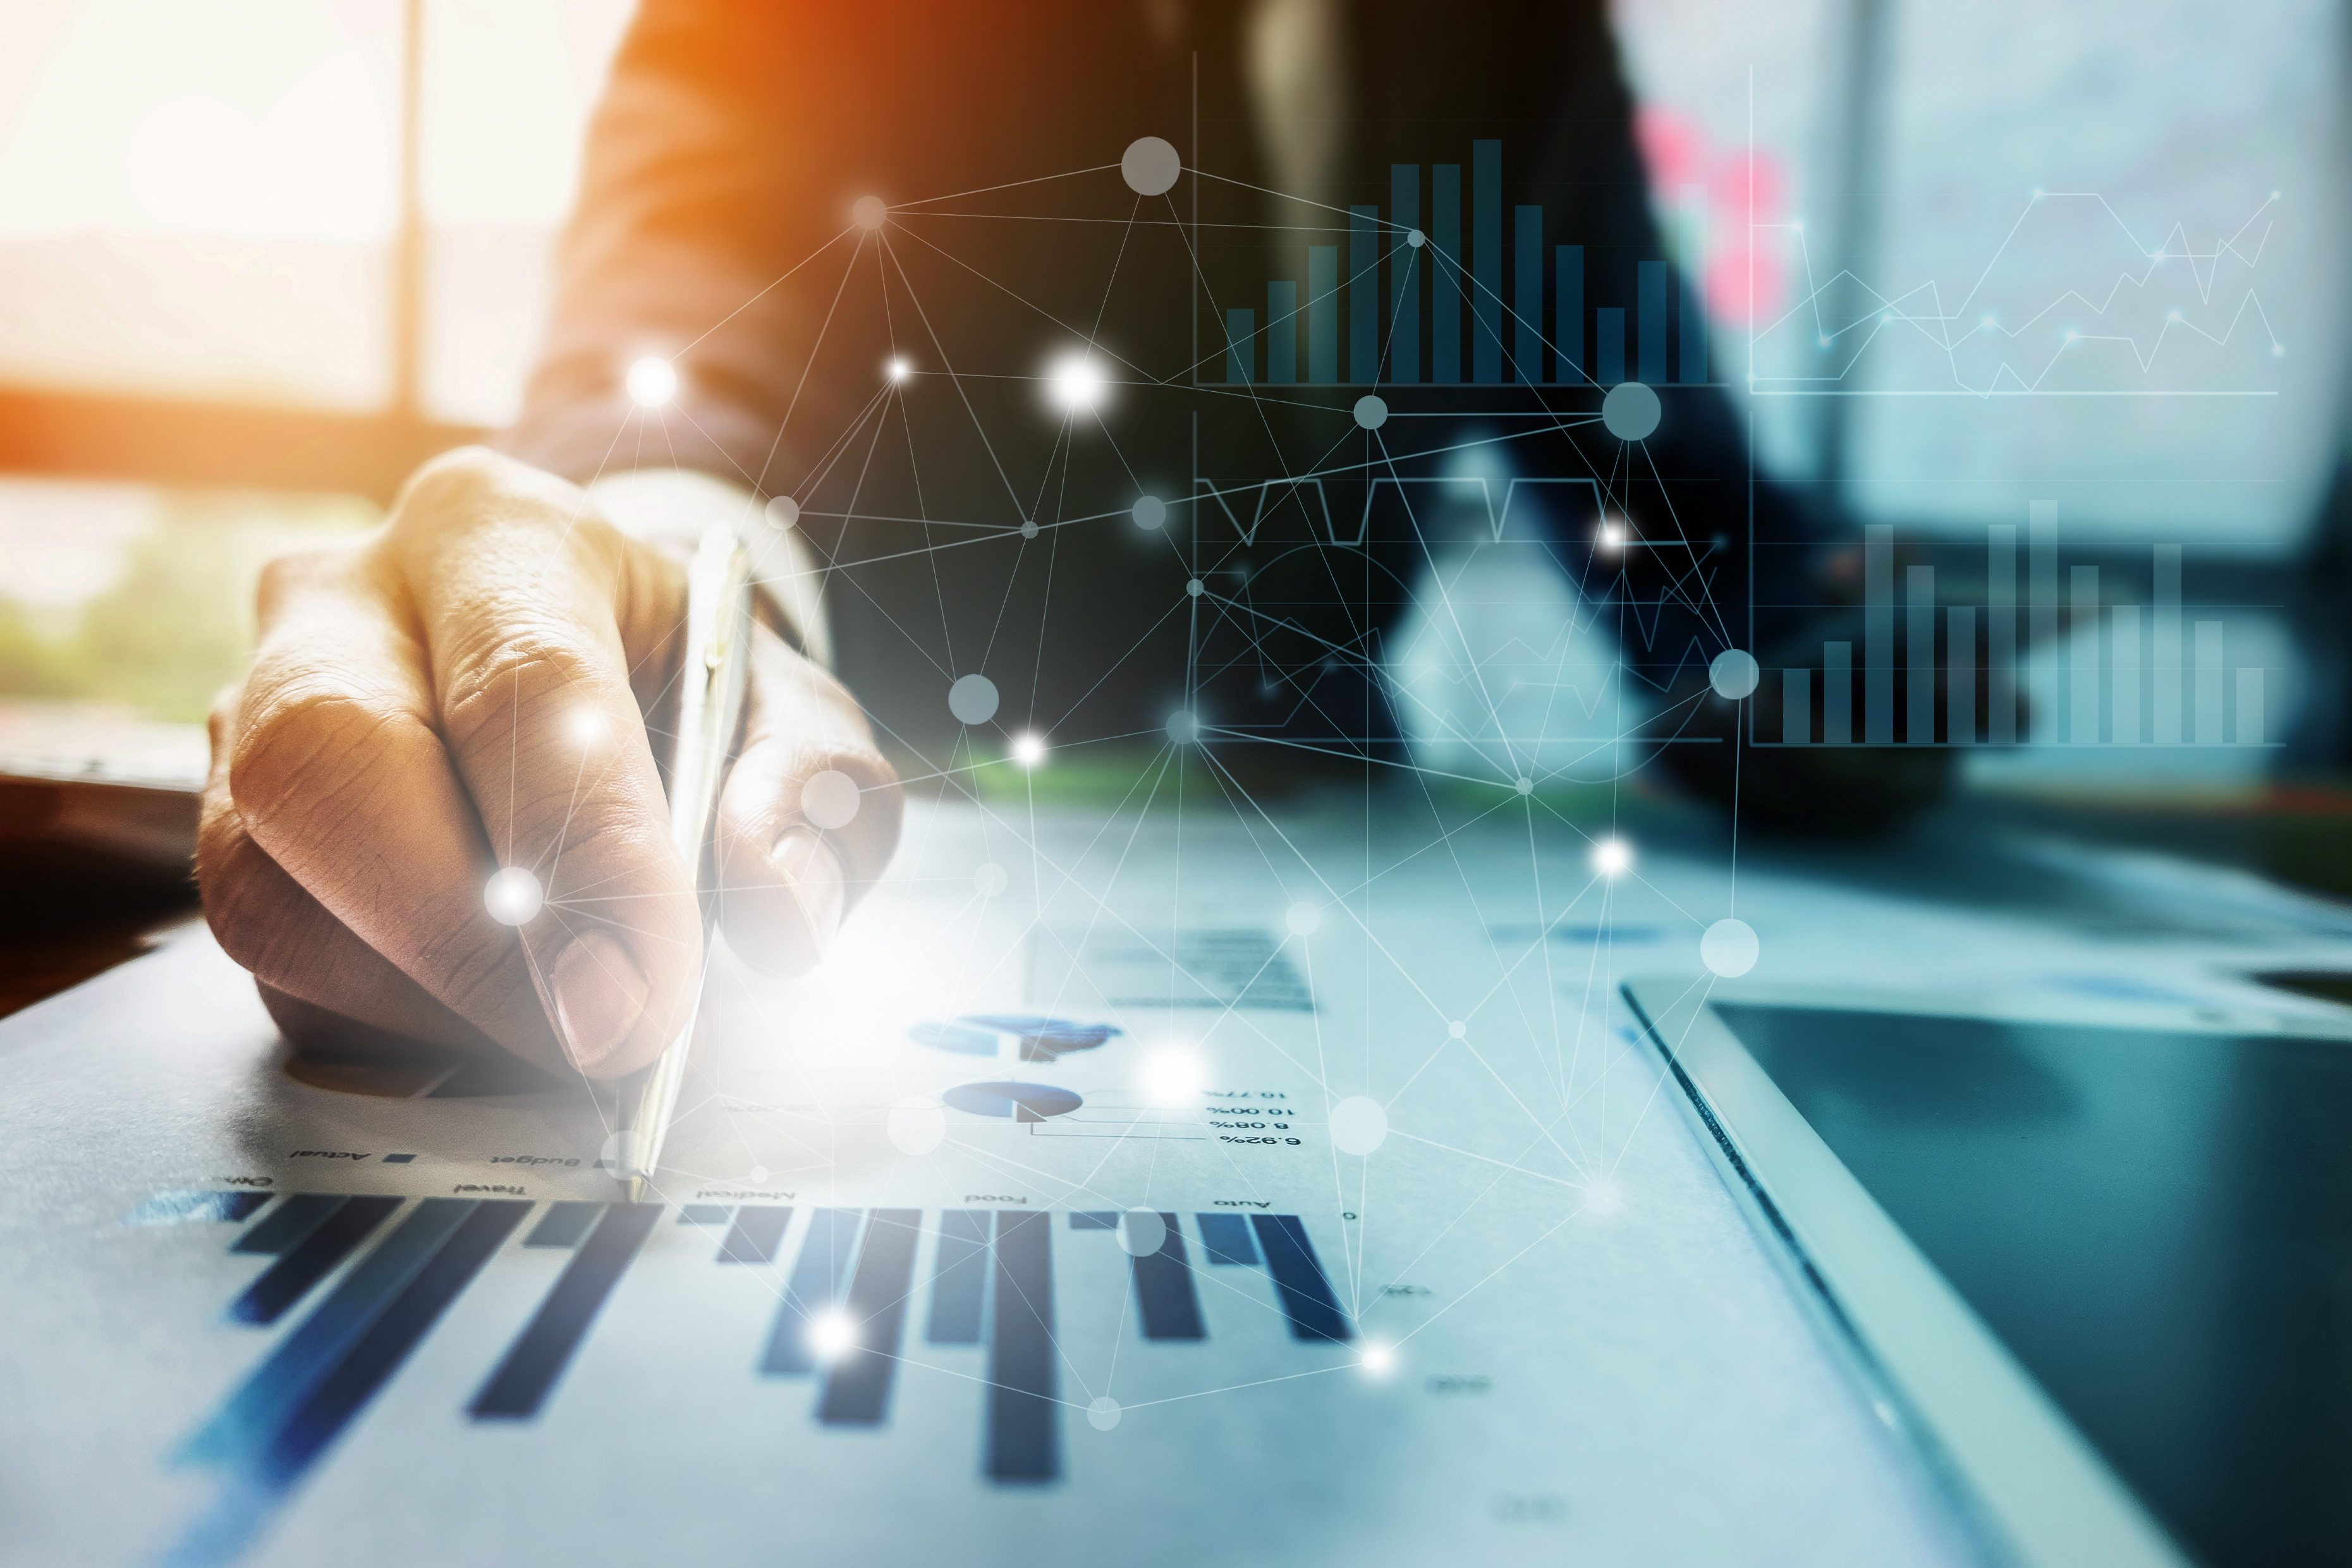 The data revolution is here, and it creates an investment priority for enterprises to stay competitive and drive new opportunities. One of the brightest areas is data monetization.